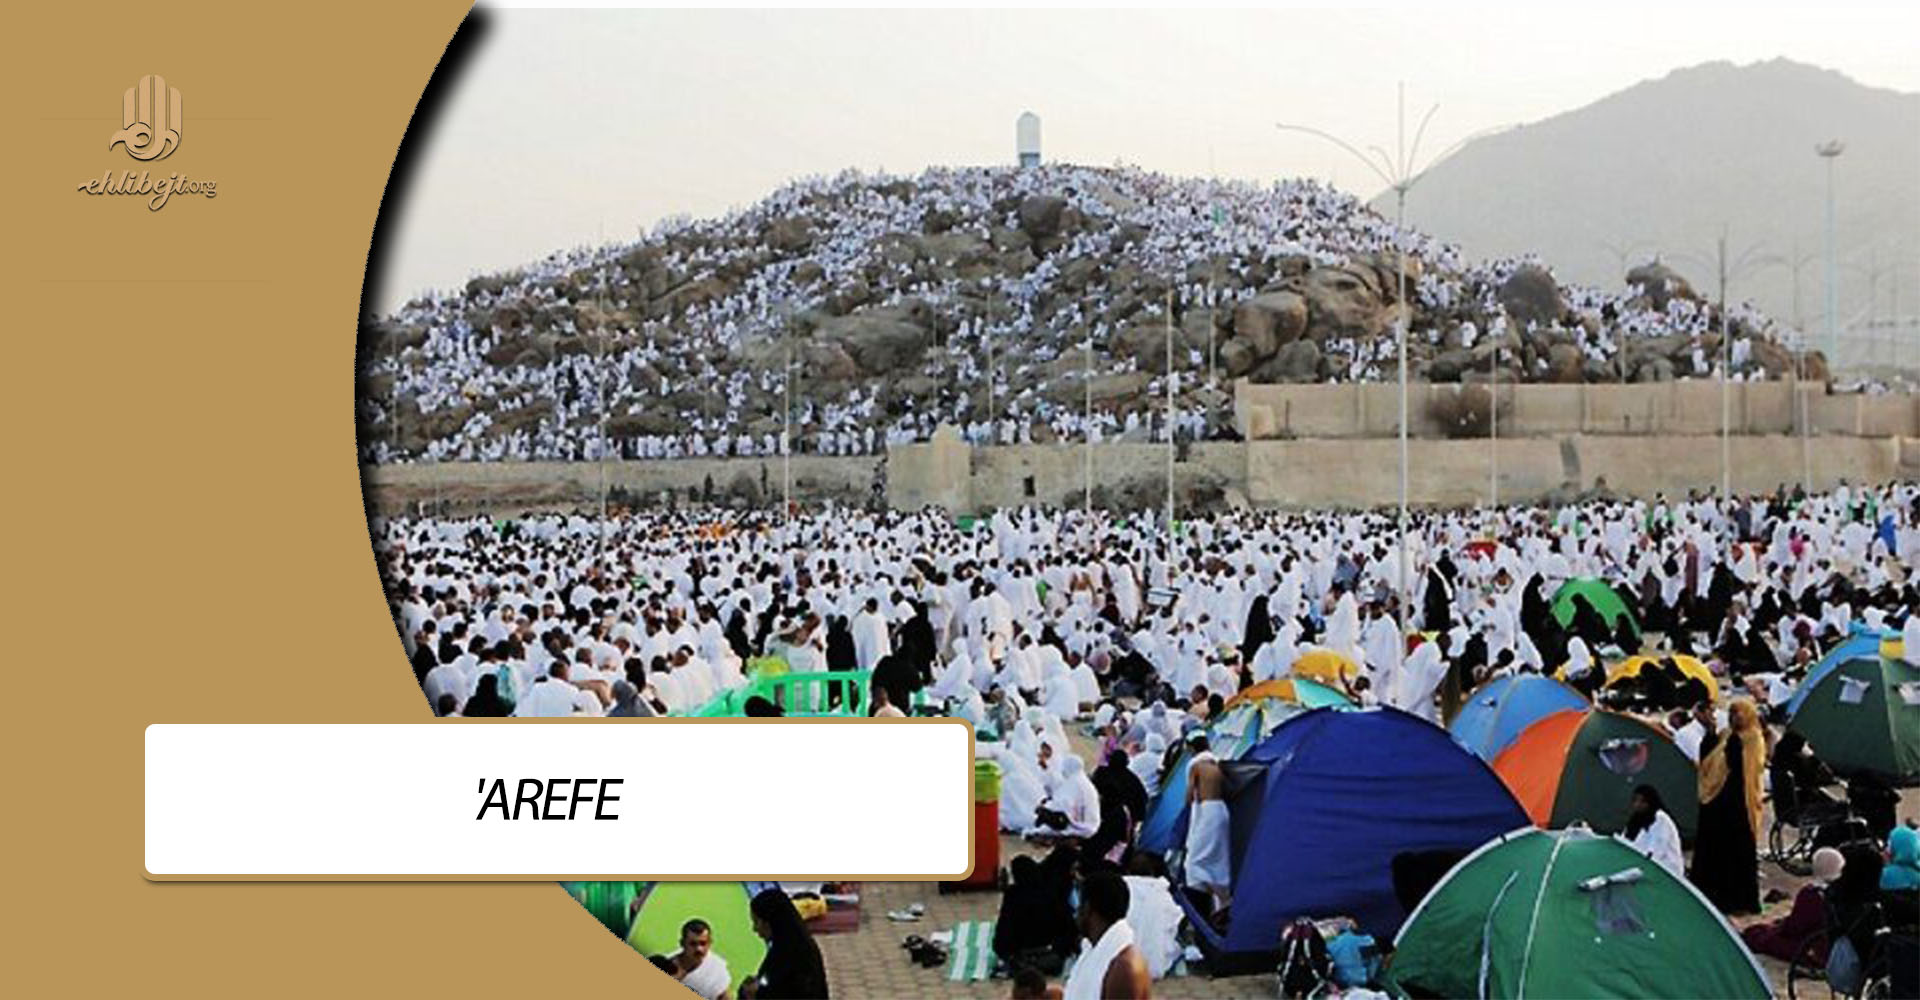 'Arefe